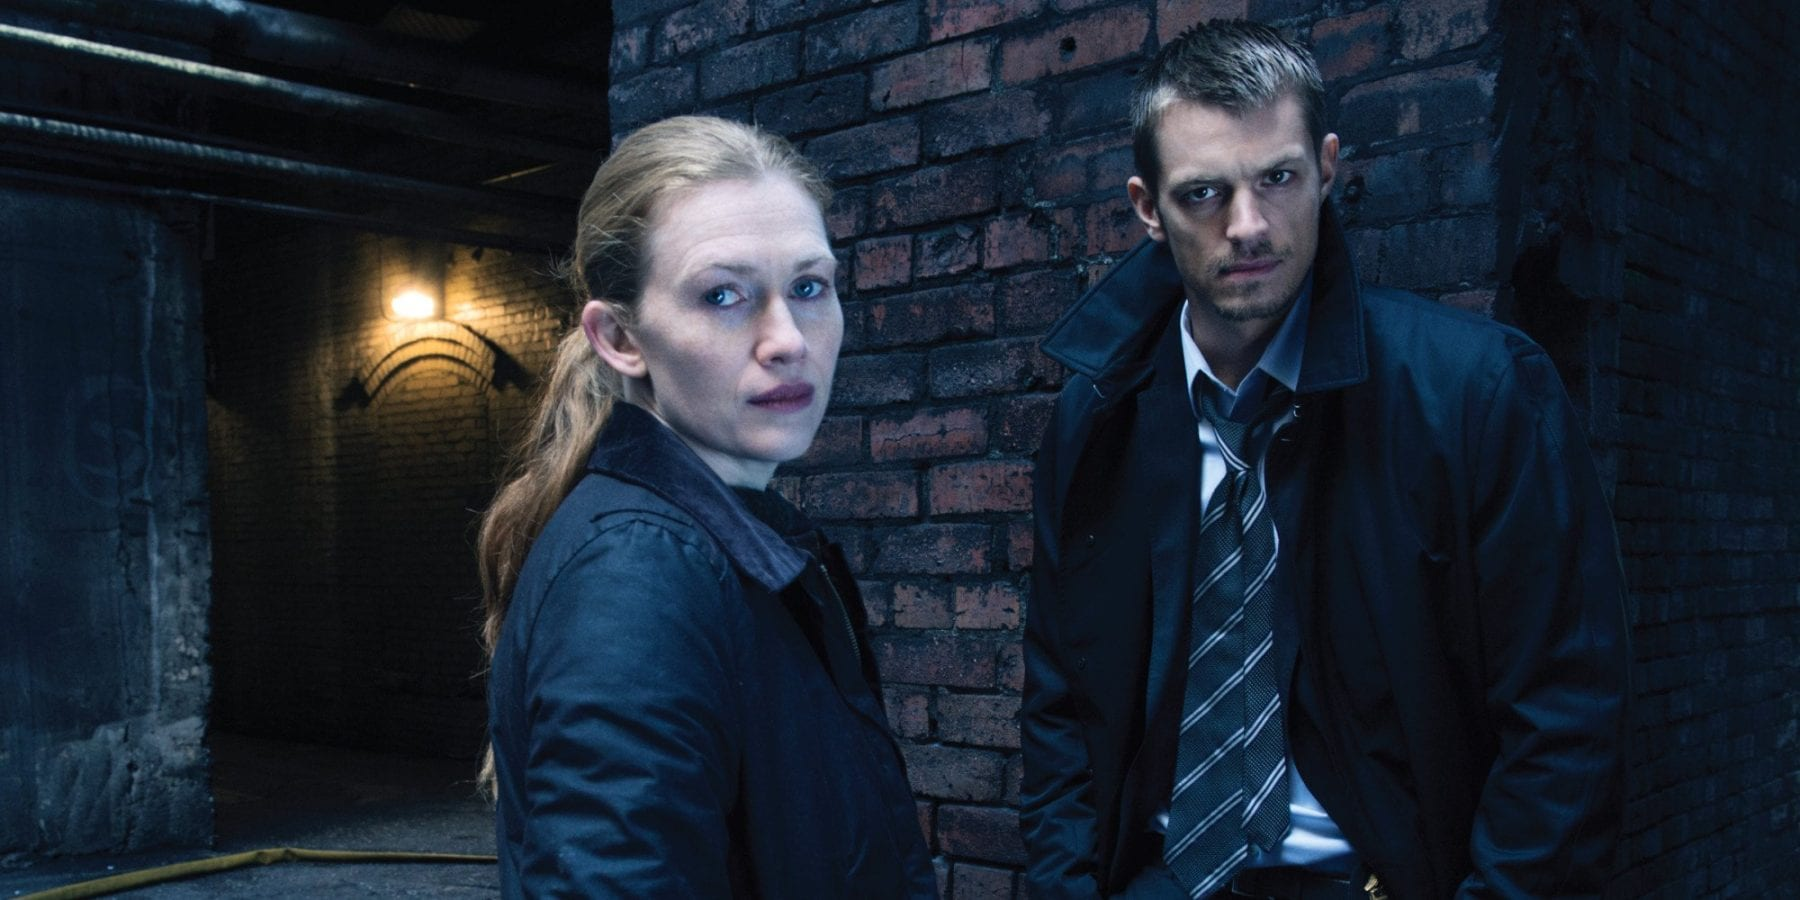 Sarah Linden (Mireille Enos) and Stephen Holder (Joel Kinnaman) look on in AMC's The Killing